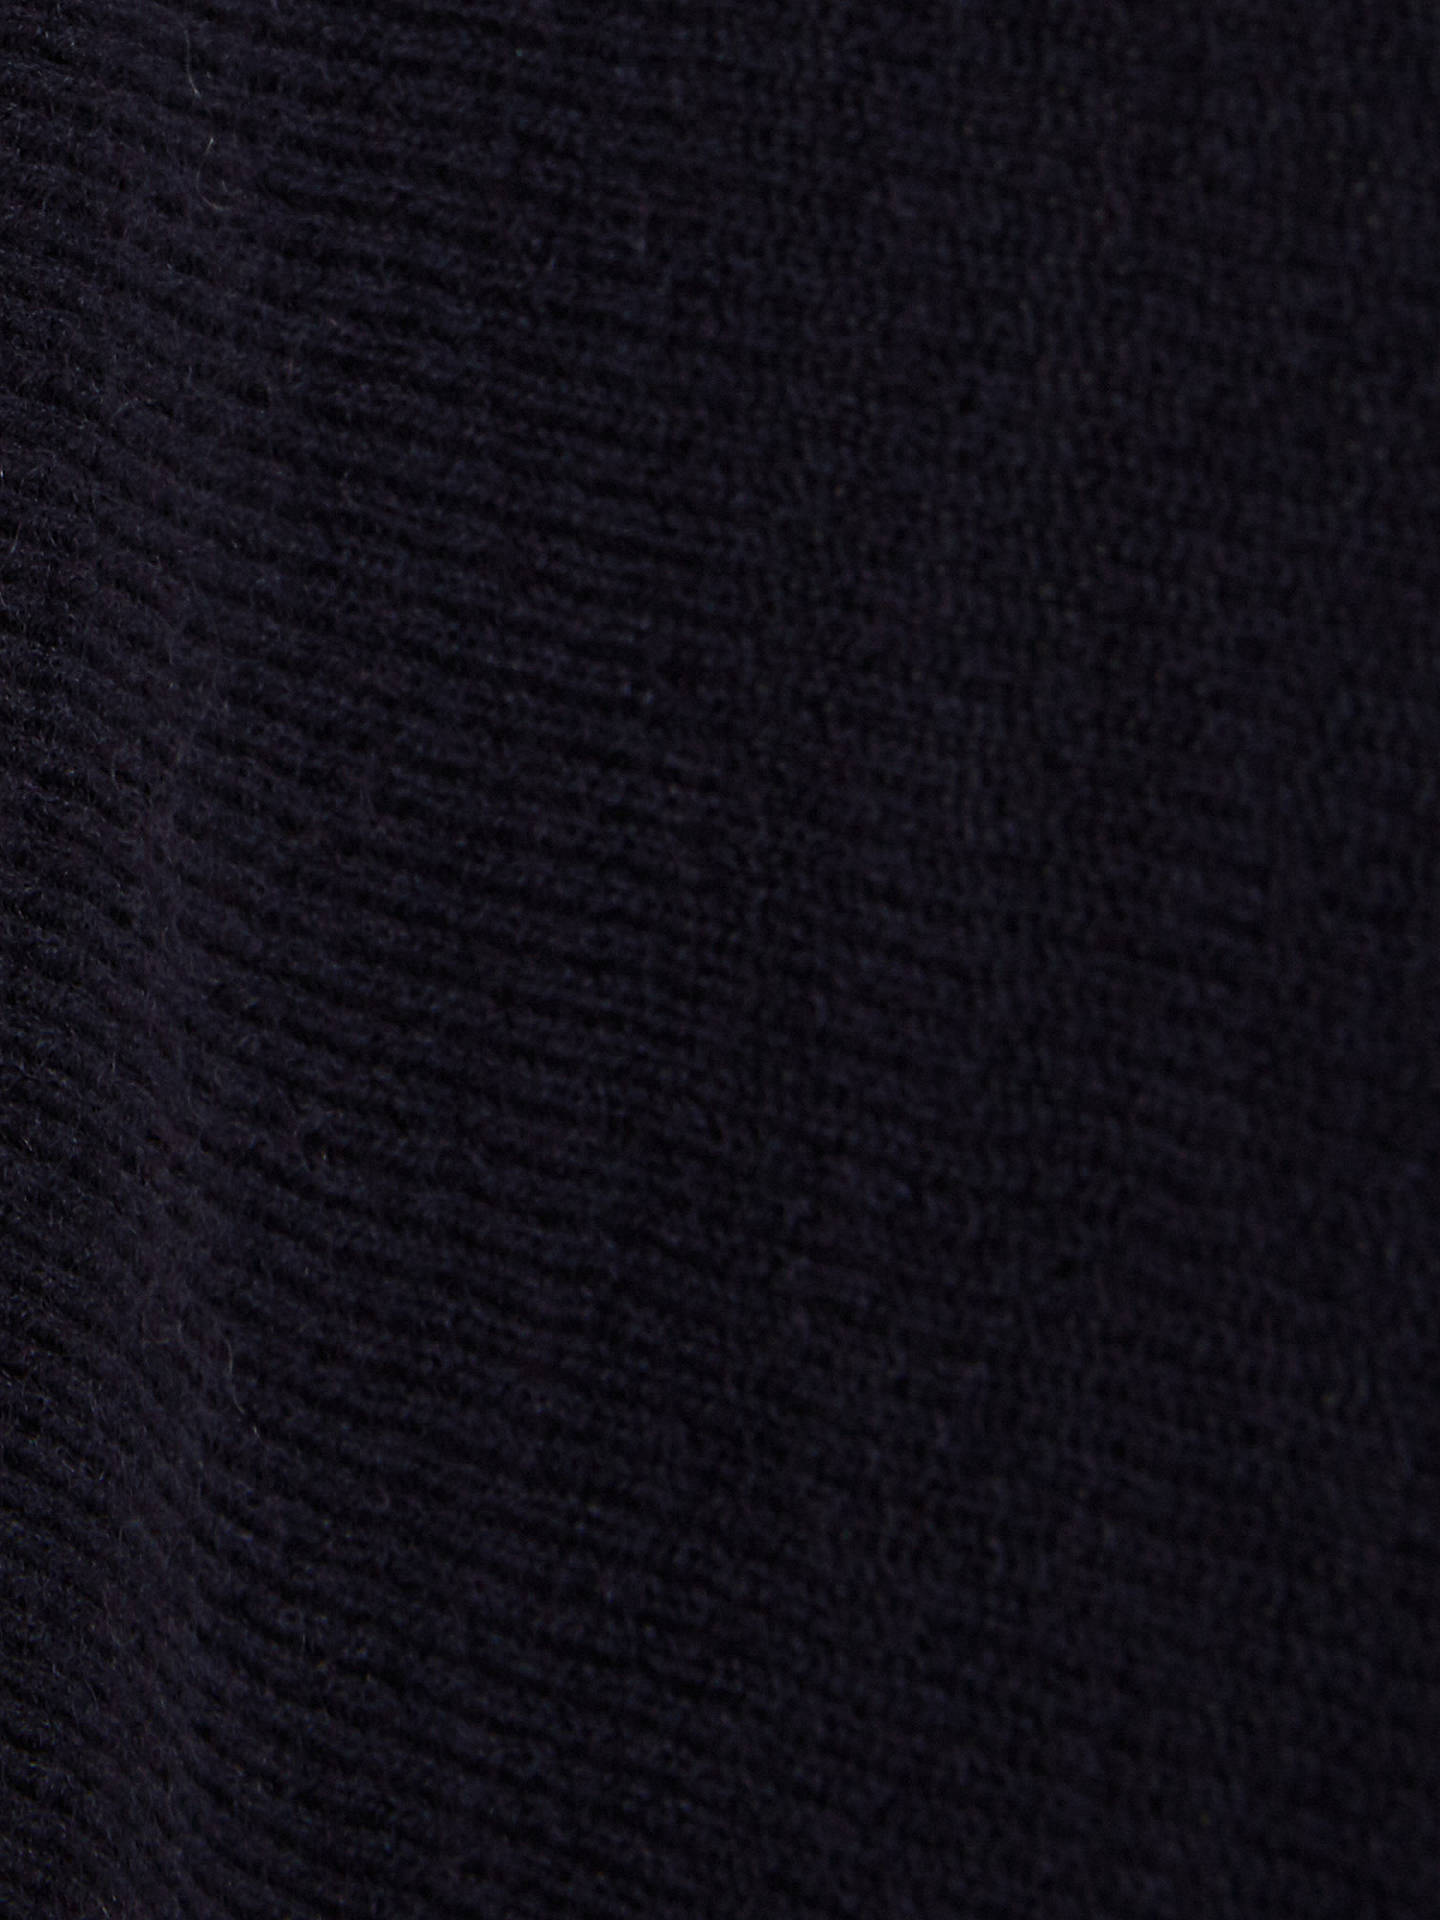 BuyPhase Eight Becca Batwing Jumper, Navy Blue, XS Online at johnlewis.com